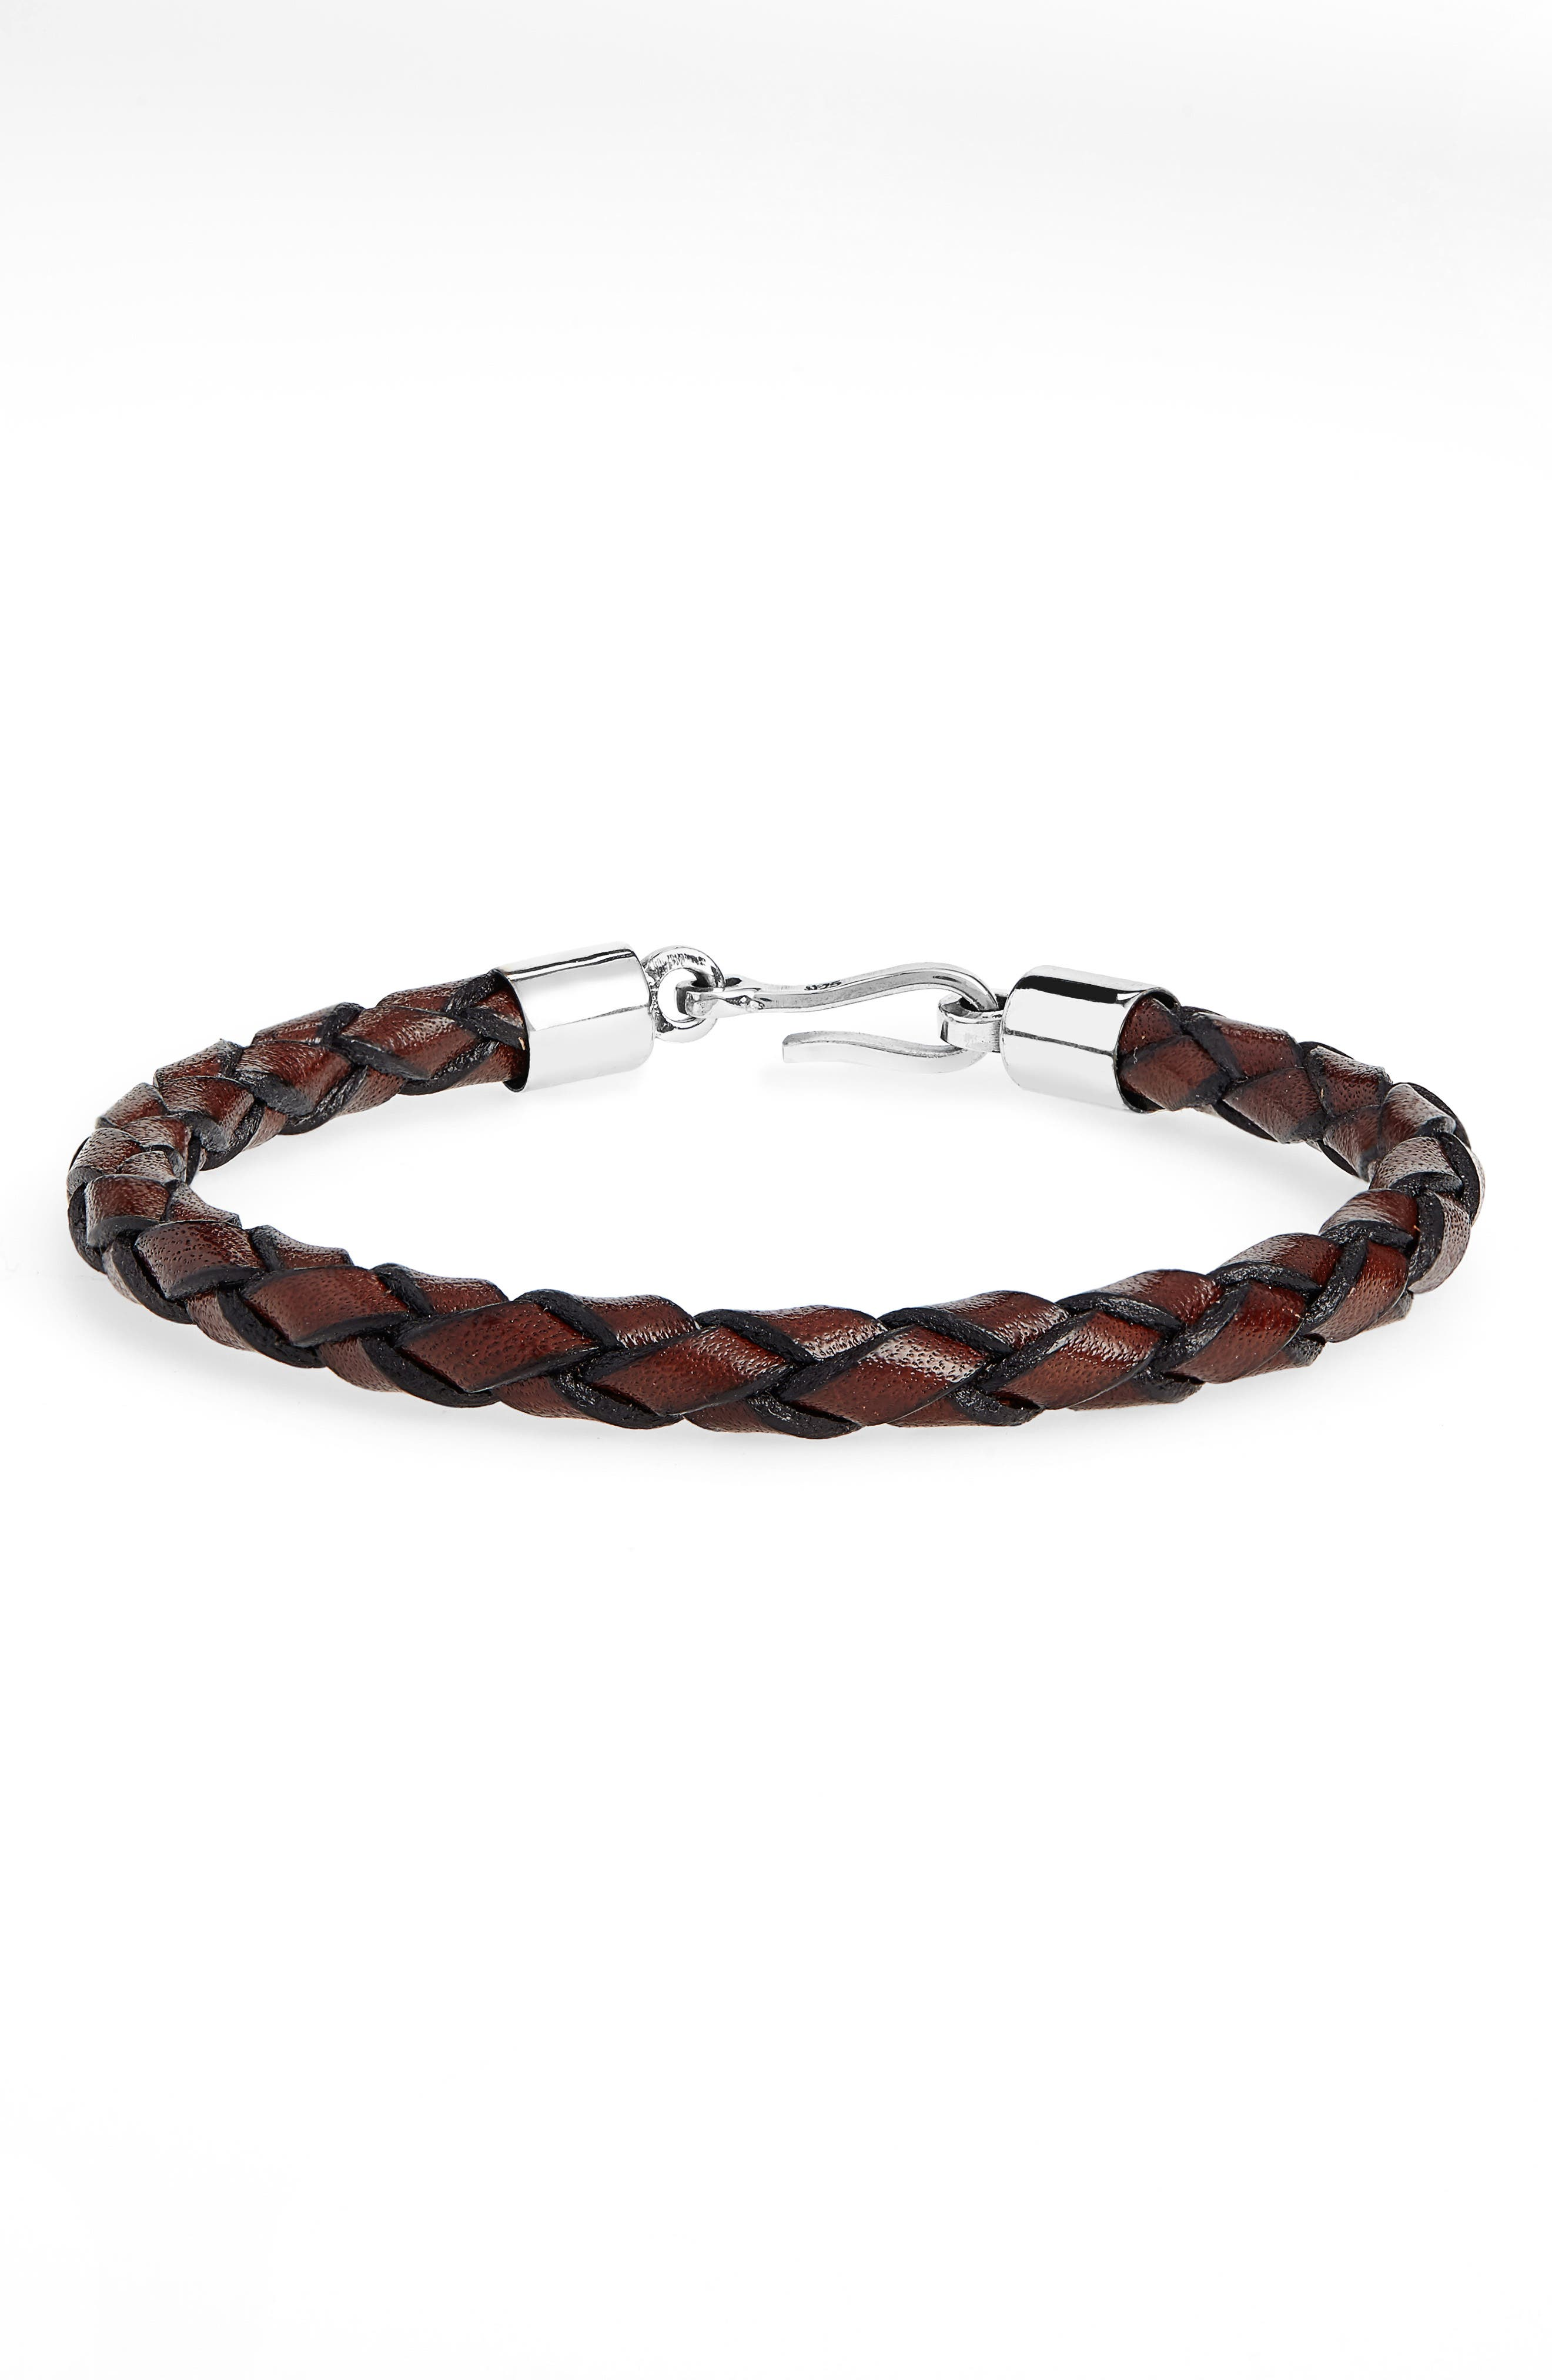 CAPUTO & CO. Braided Leather Bracelet in Brown